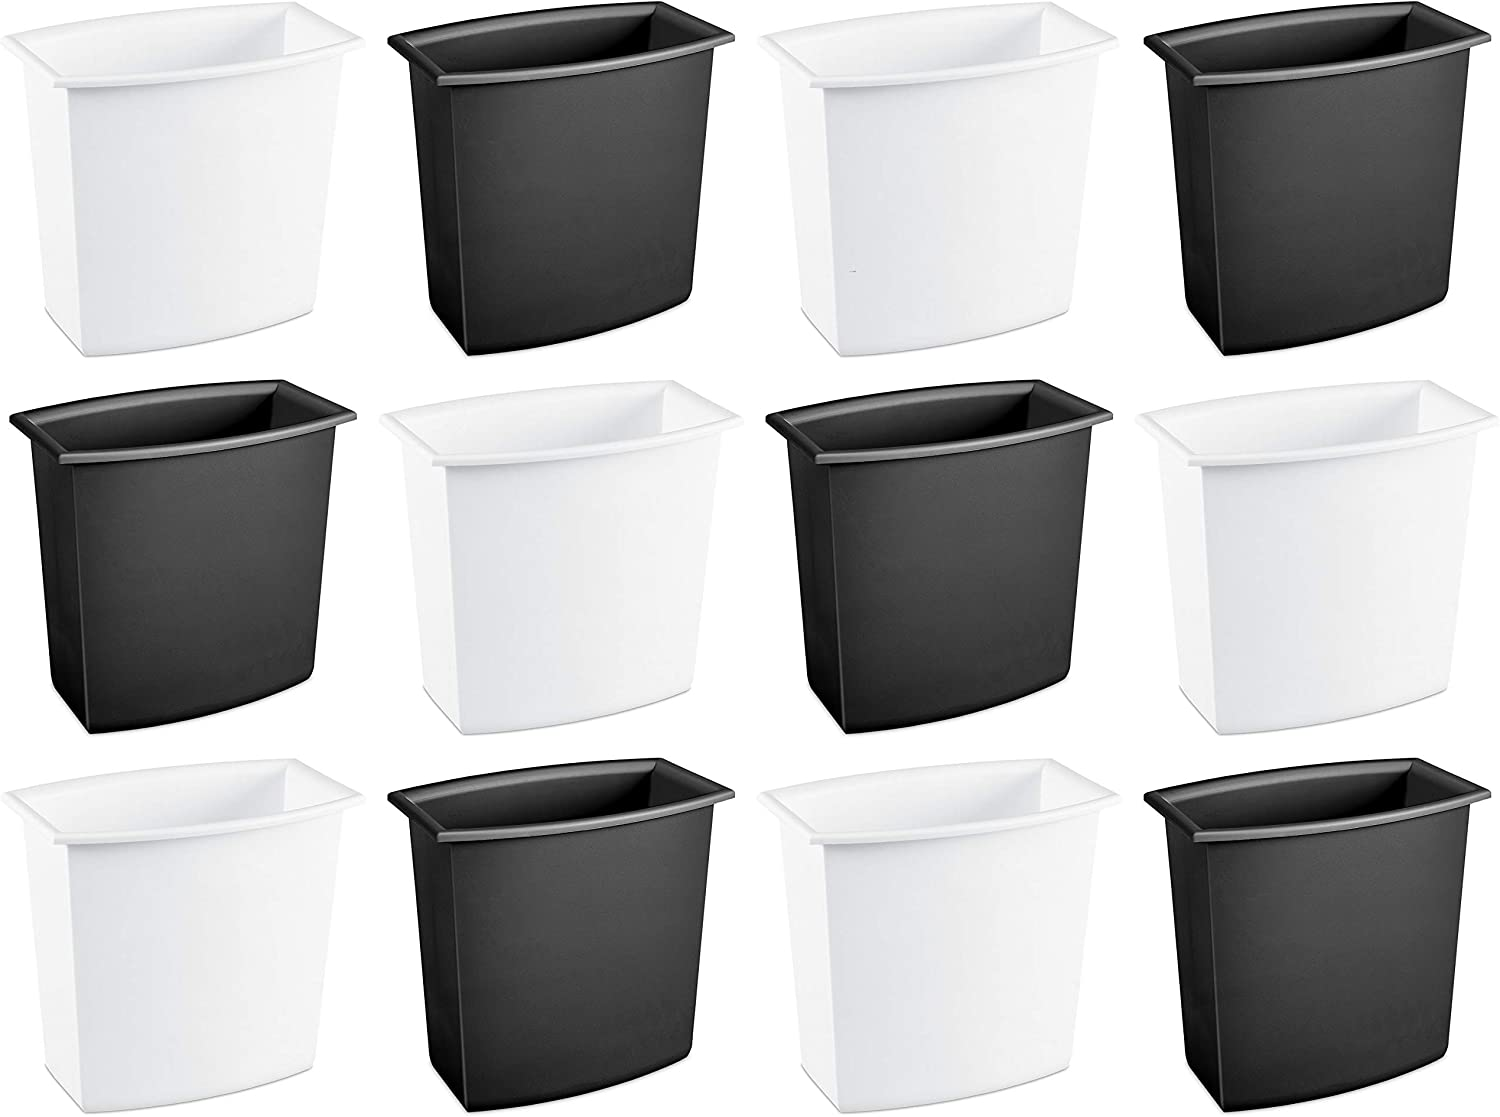 Amazon Com Sterilite 10220012 2 Gallon 7 6 Liter Rectangular Vanity Wastebasket Black White 12 Pack Home Kitchen